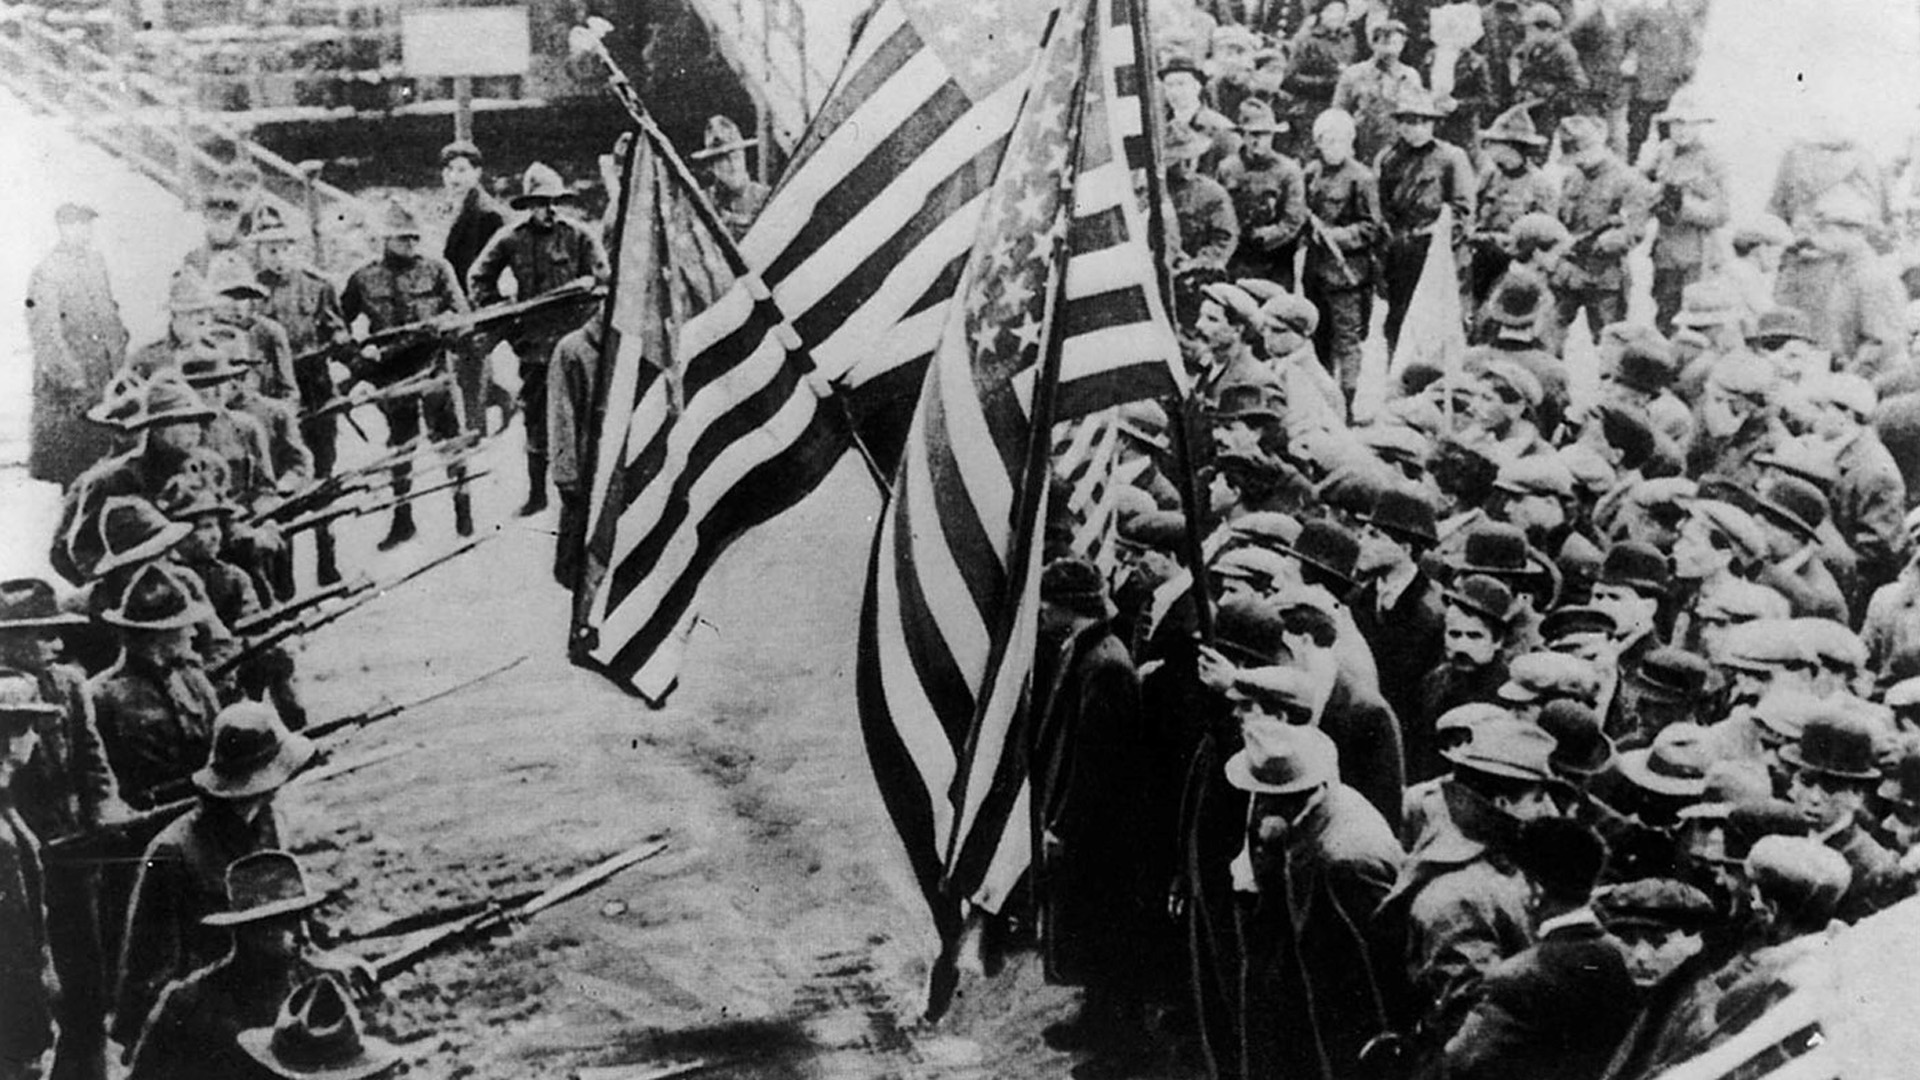 Caption: Massachusetts militiamen with fixed bayonets surround a group of peaceful strikers (1912 Lawrence textile strike)